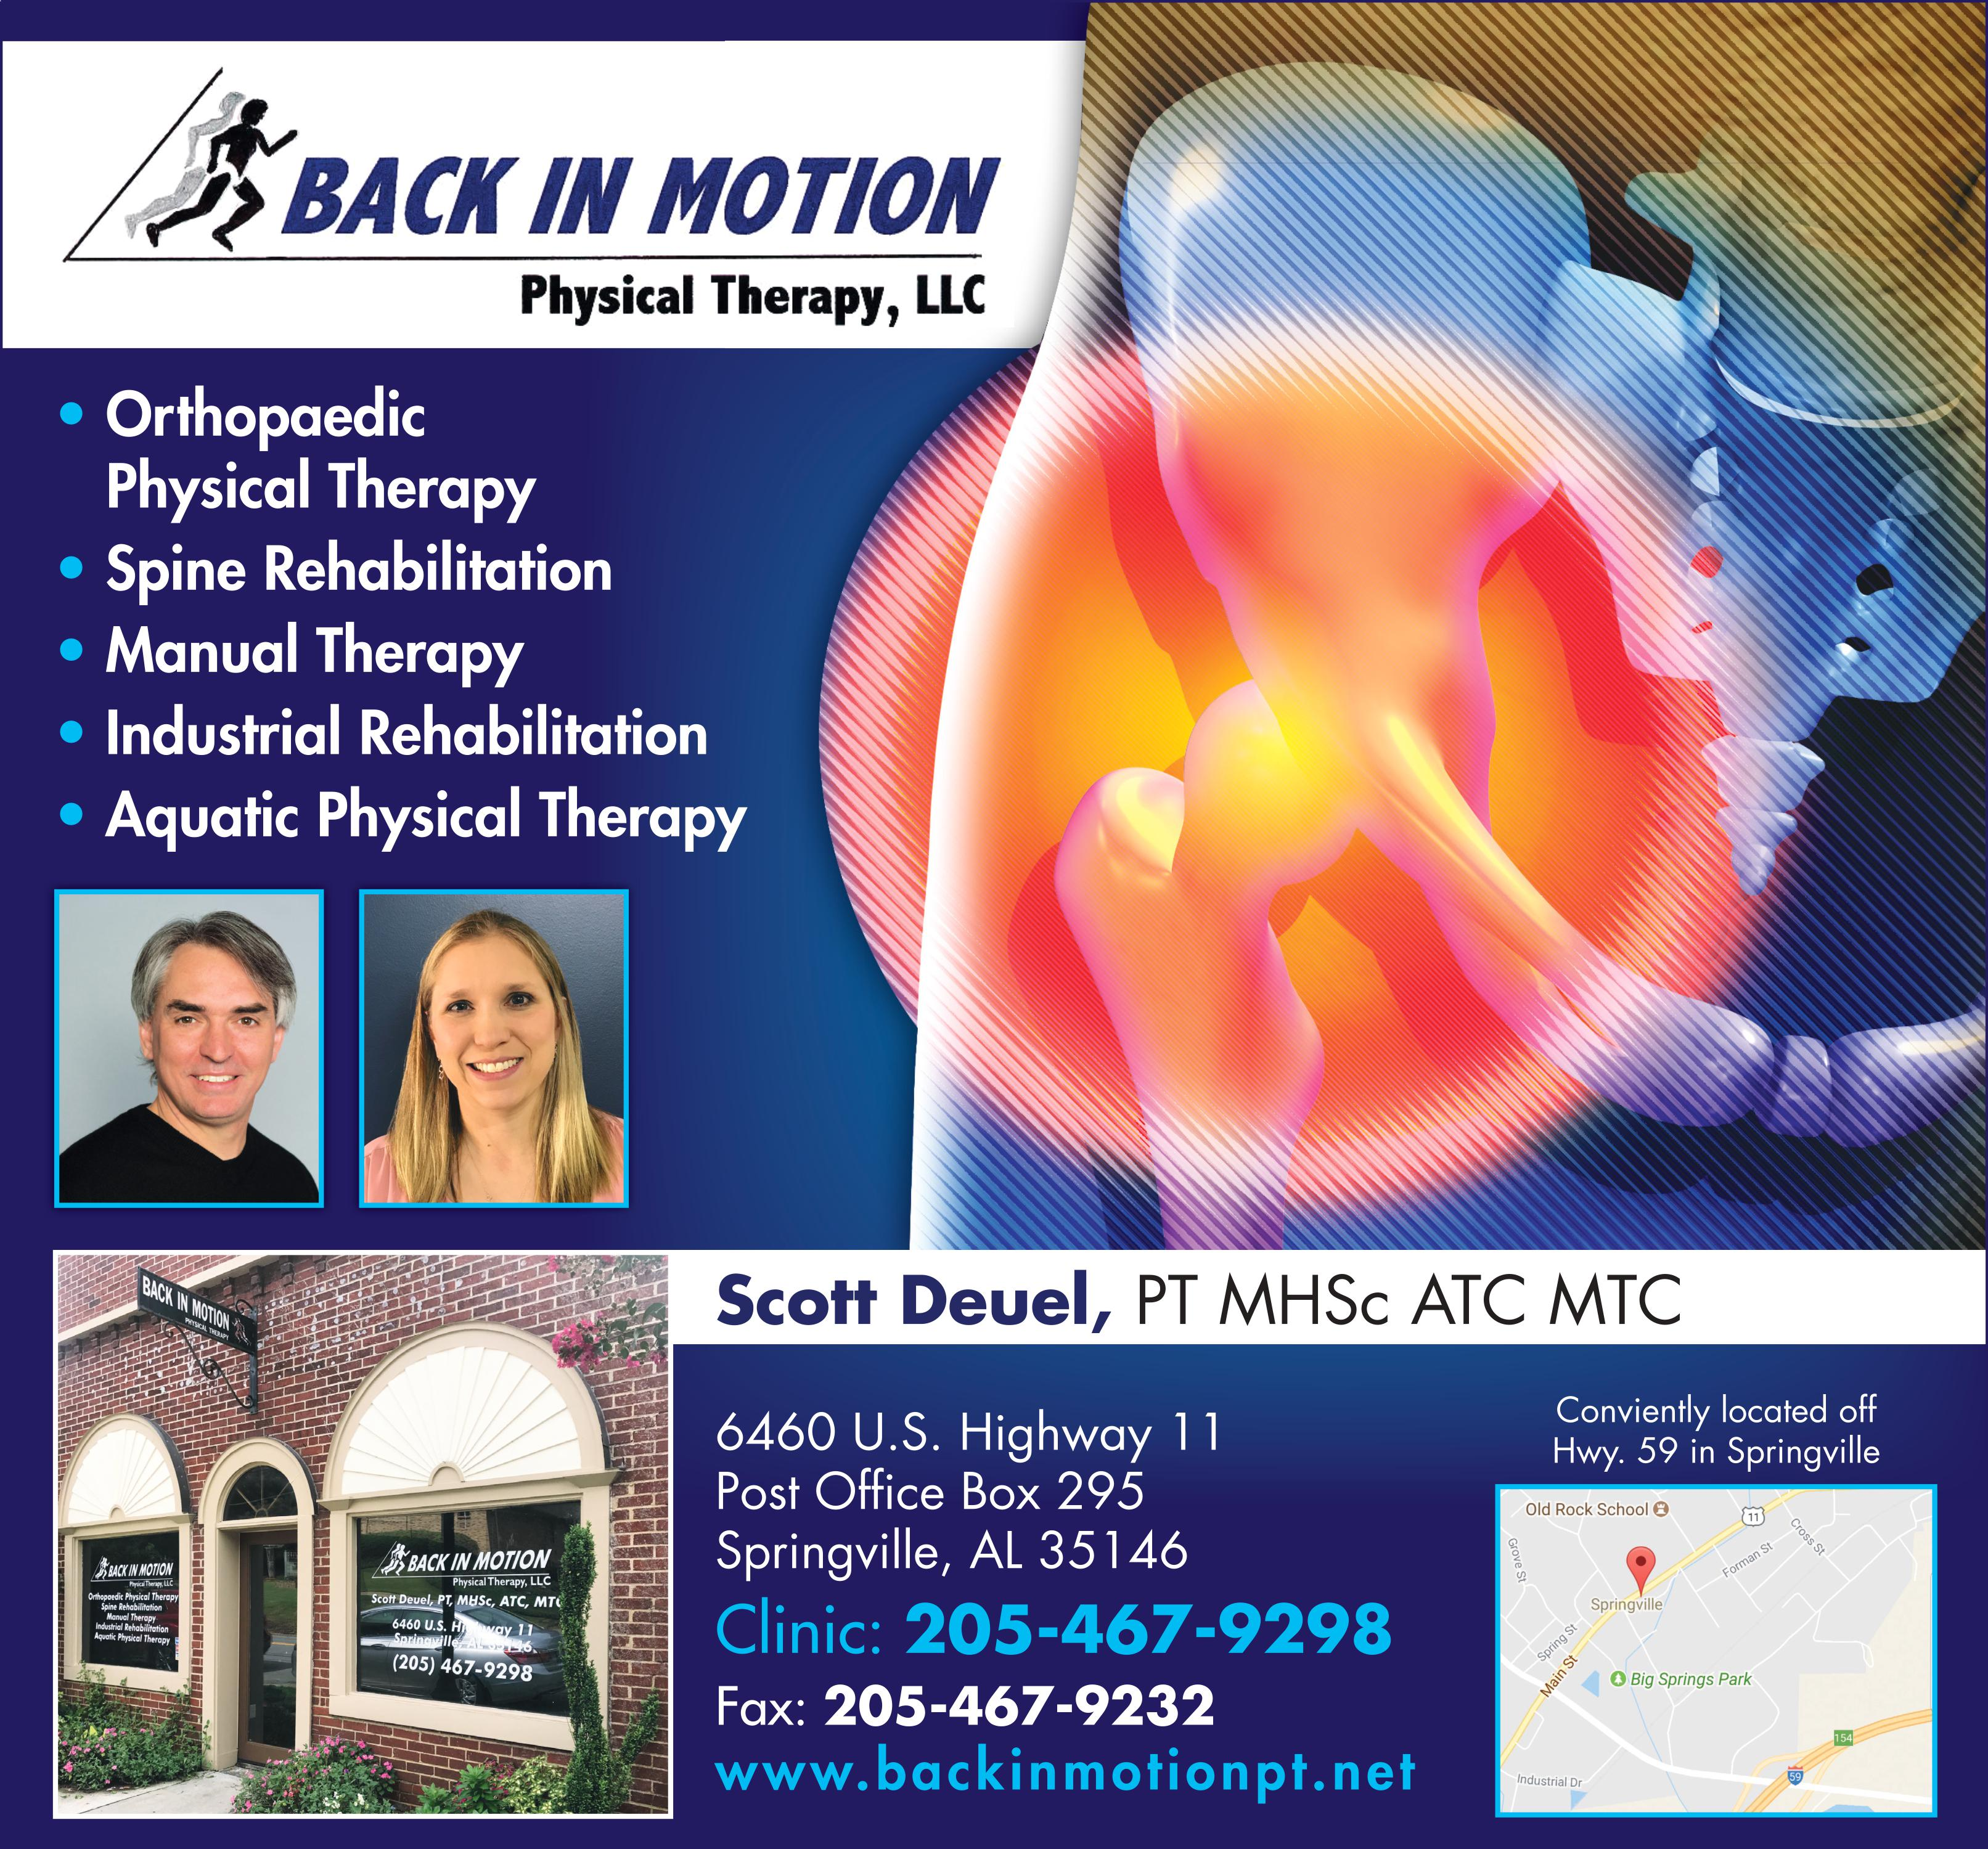 Back In Motion strives to make its clients feel comfortable